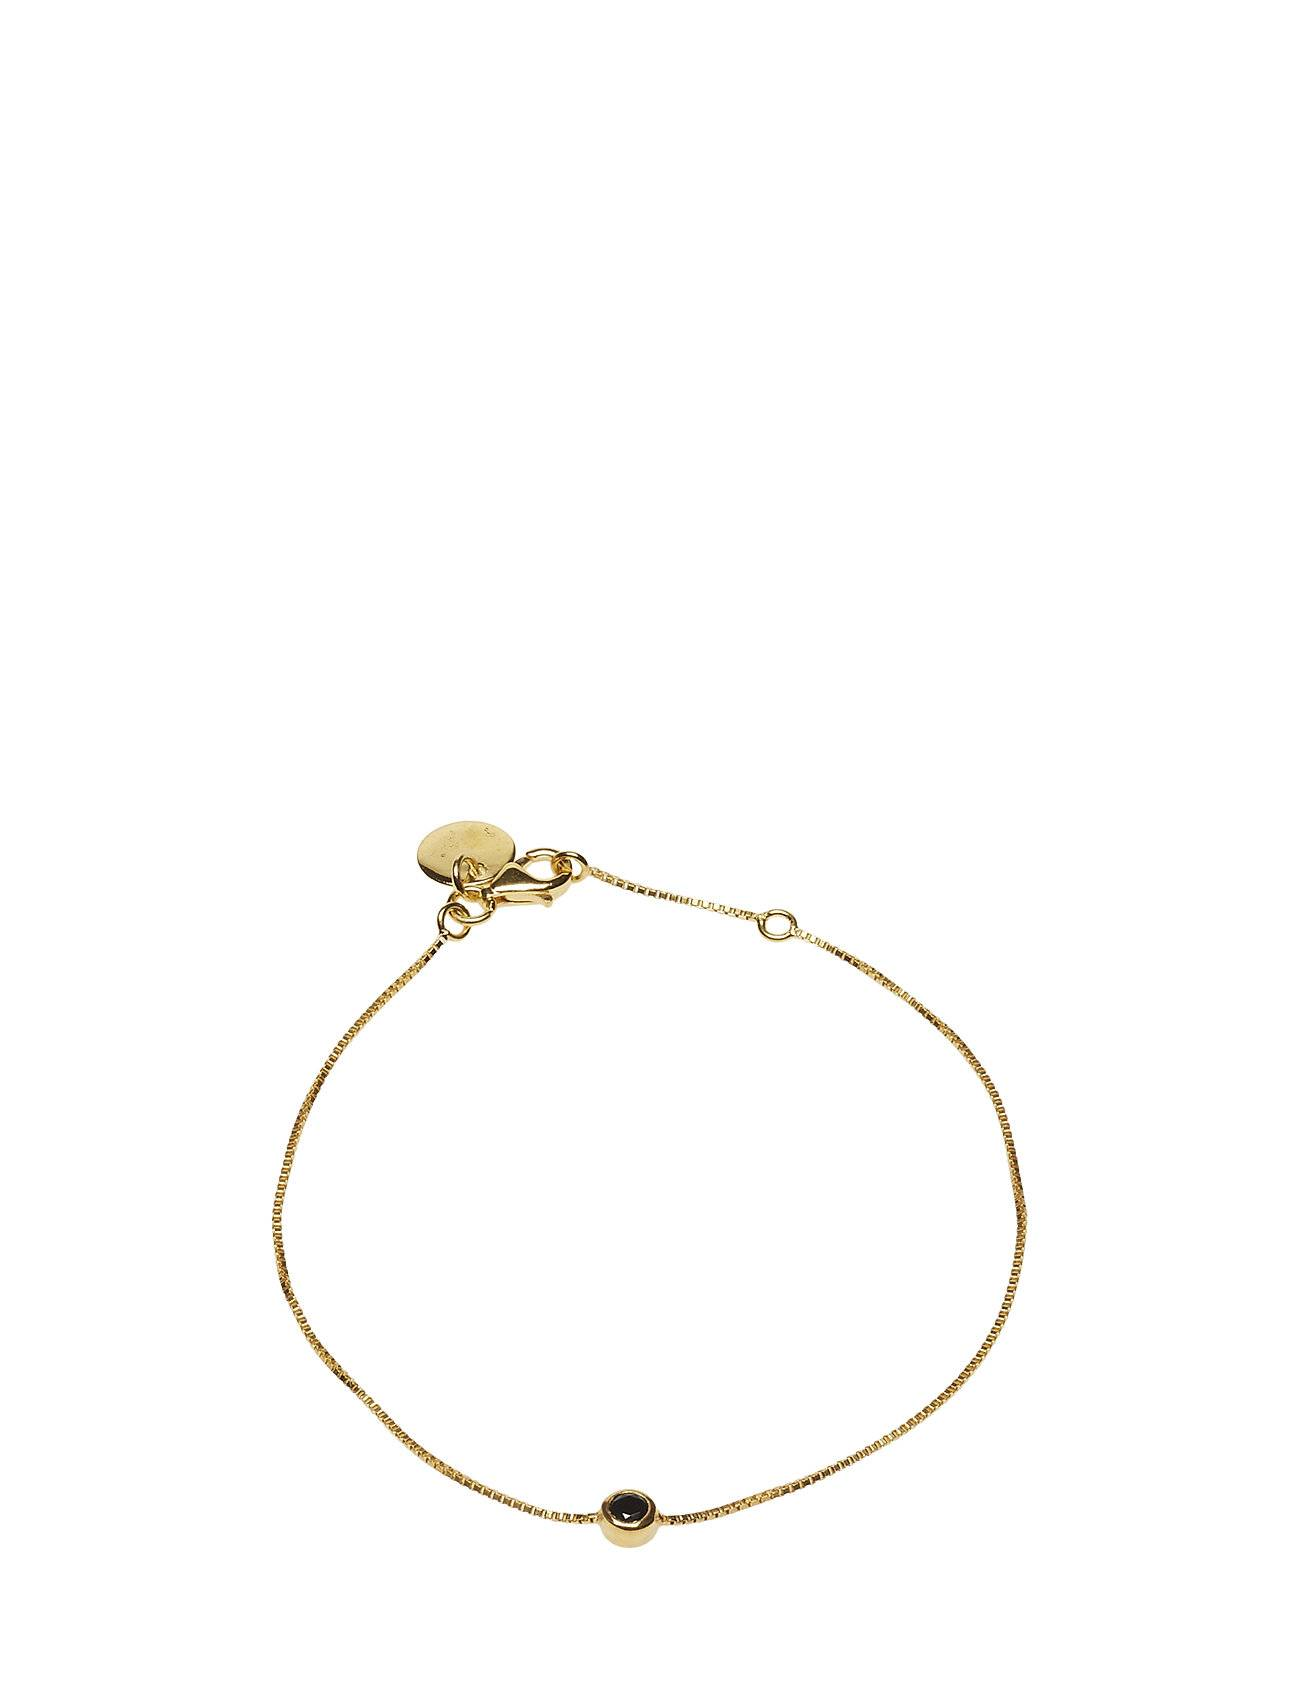 Syster P Minimalistica Solo Bracelet Gold Black Spinel